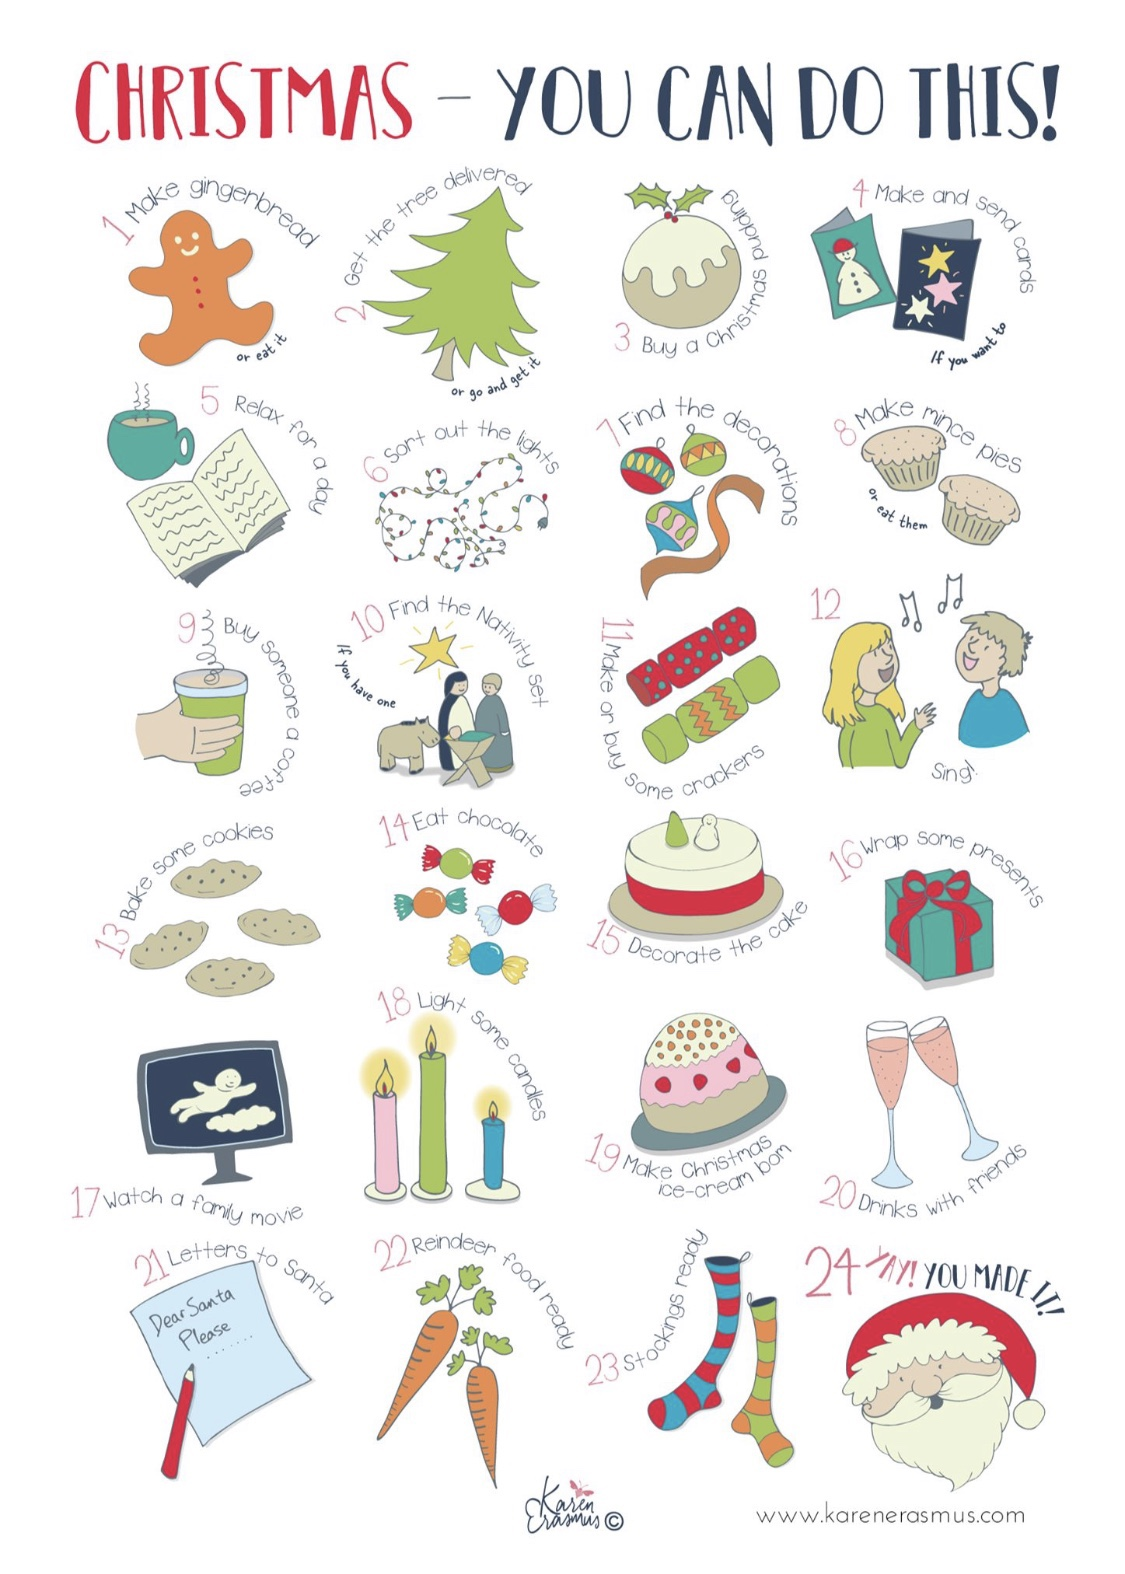 A fun illustrated advent calendar